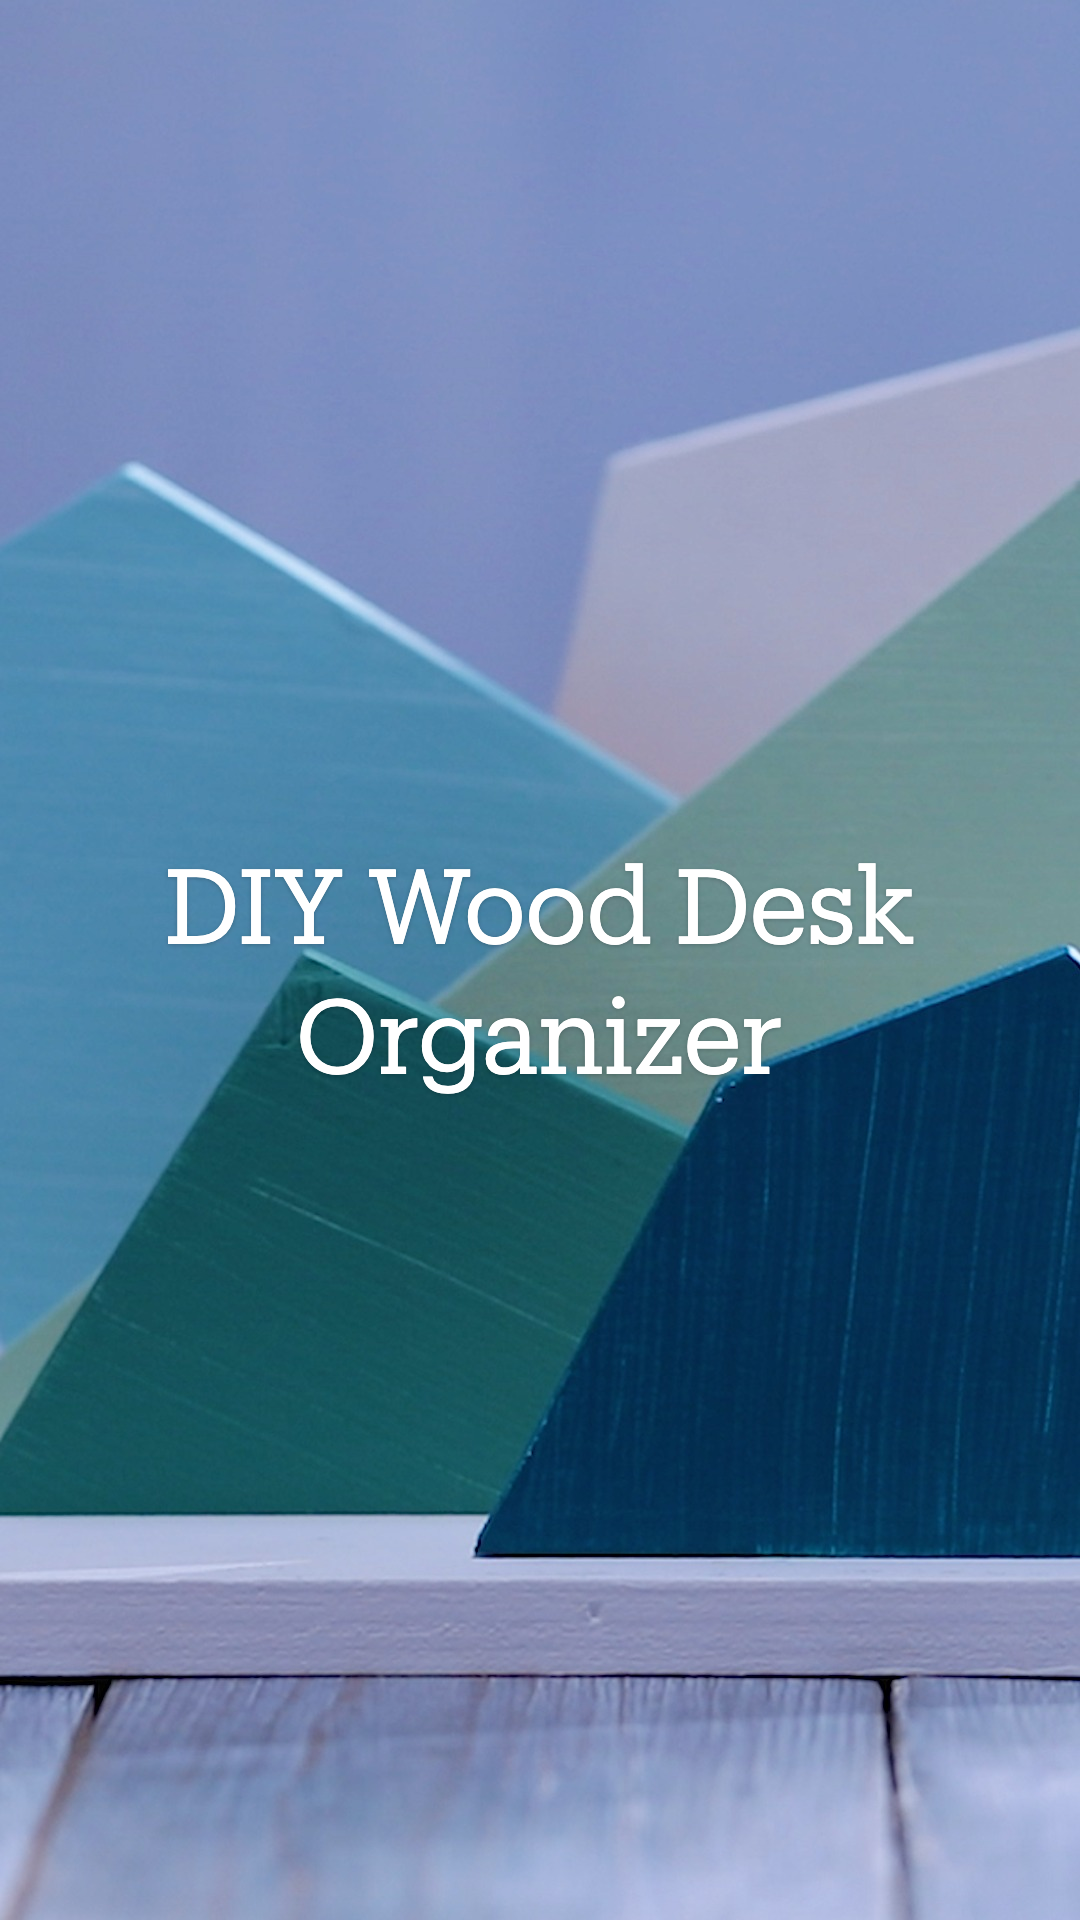 DIY Wood Desk Organizer